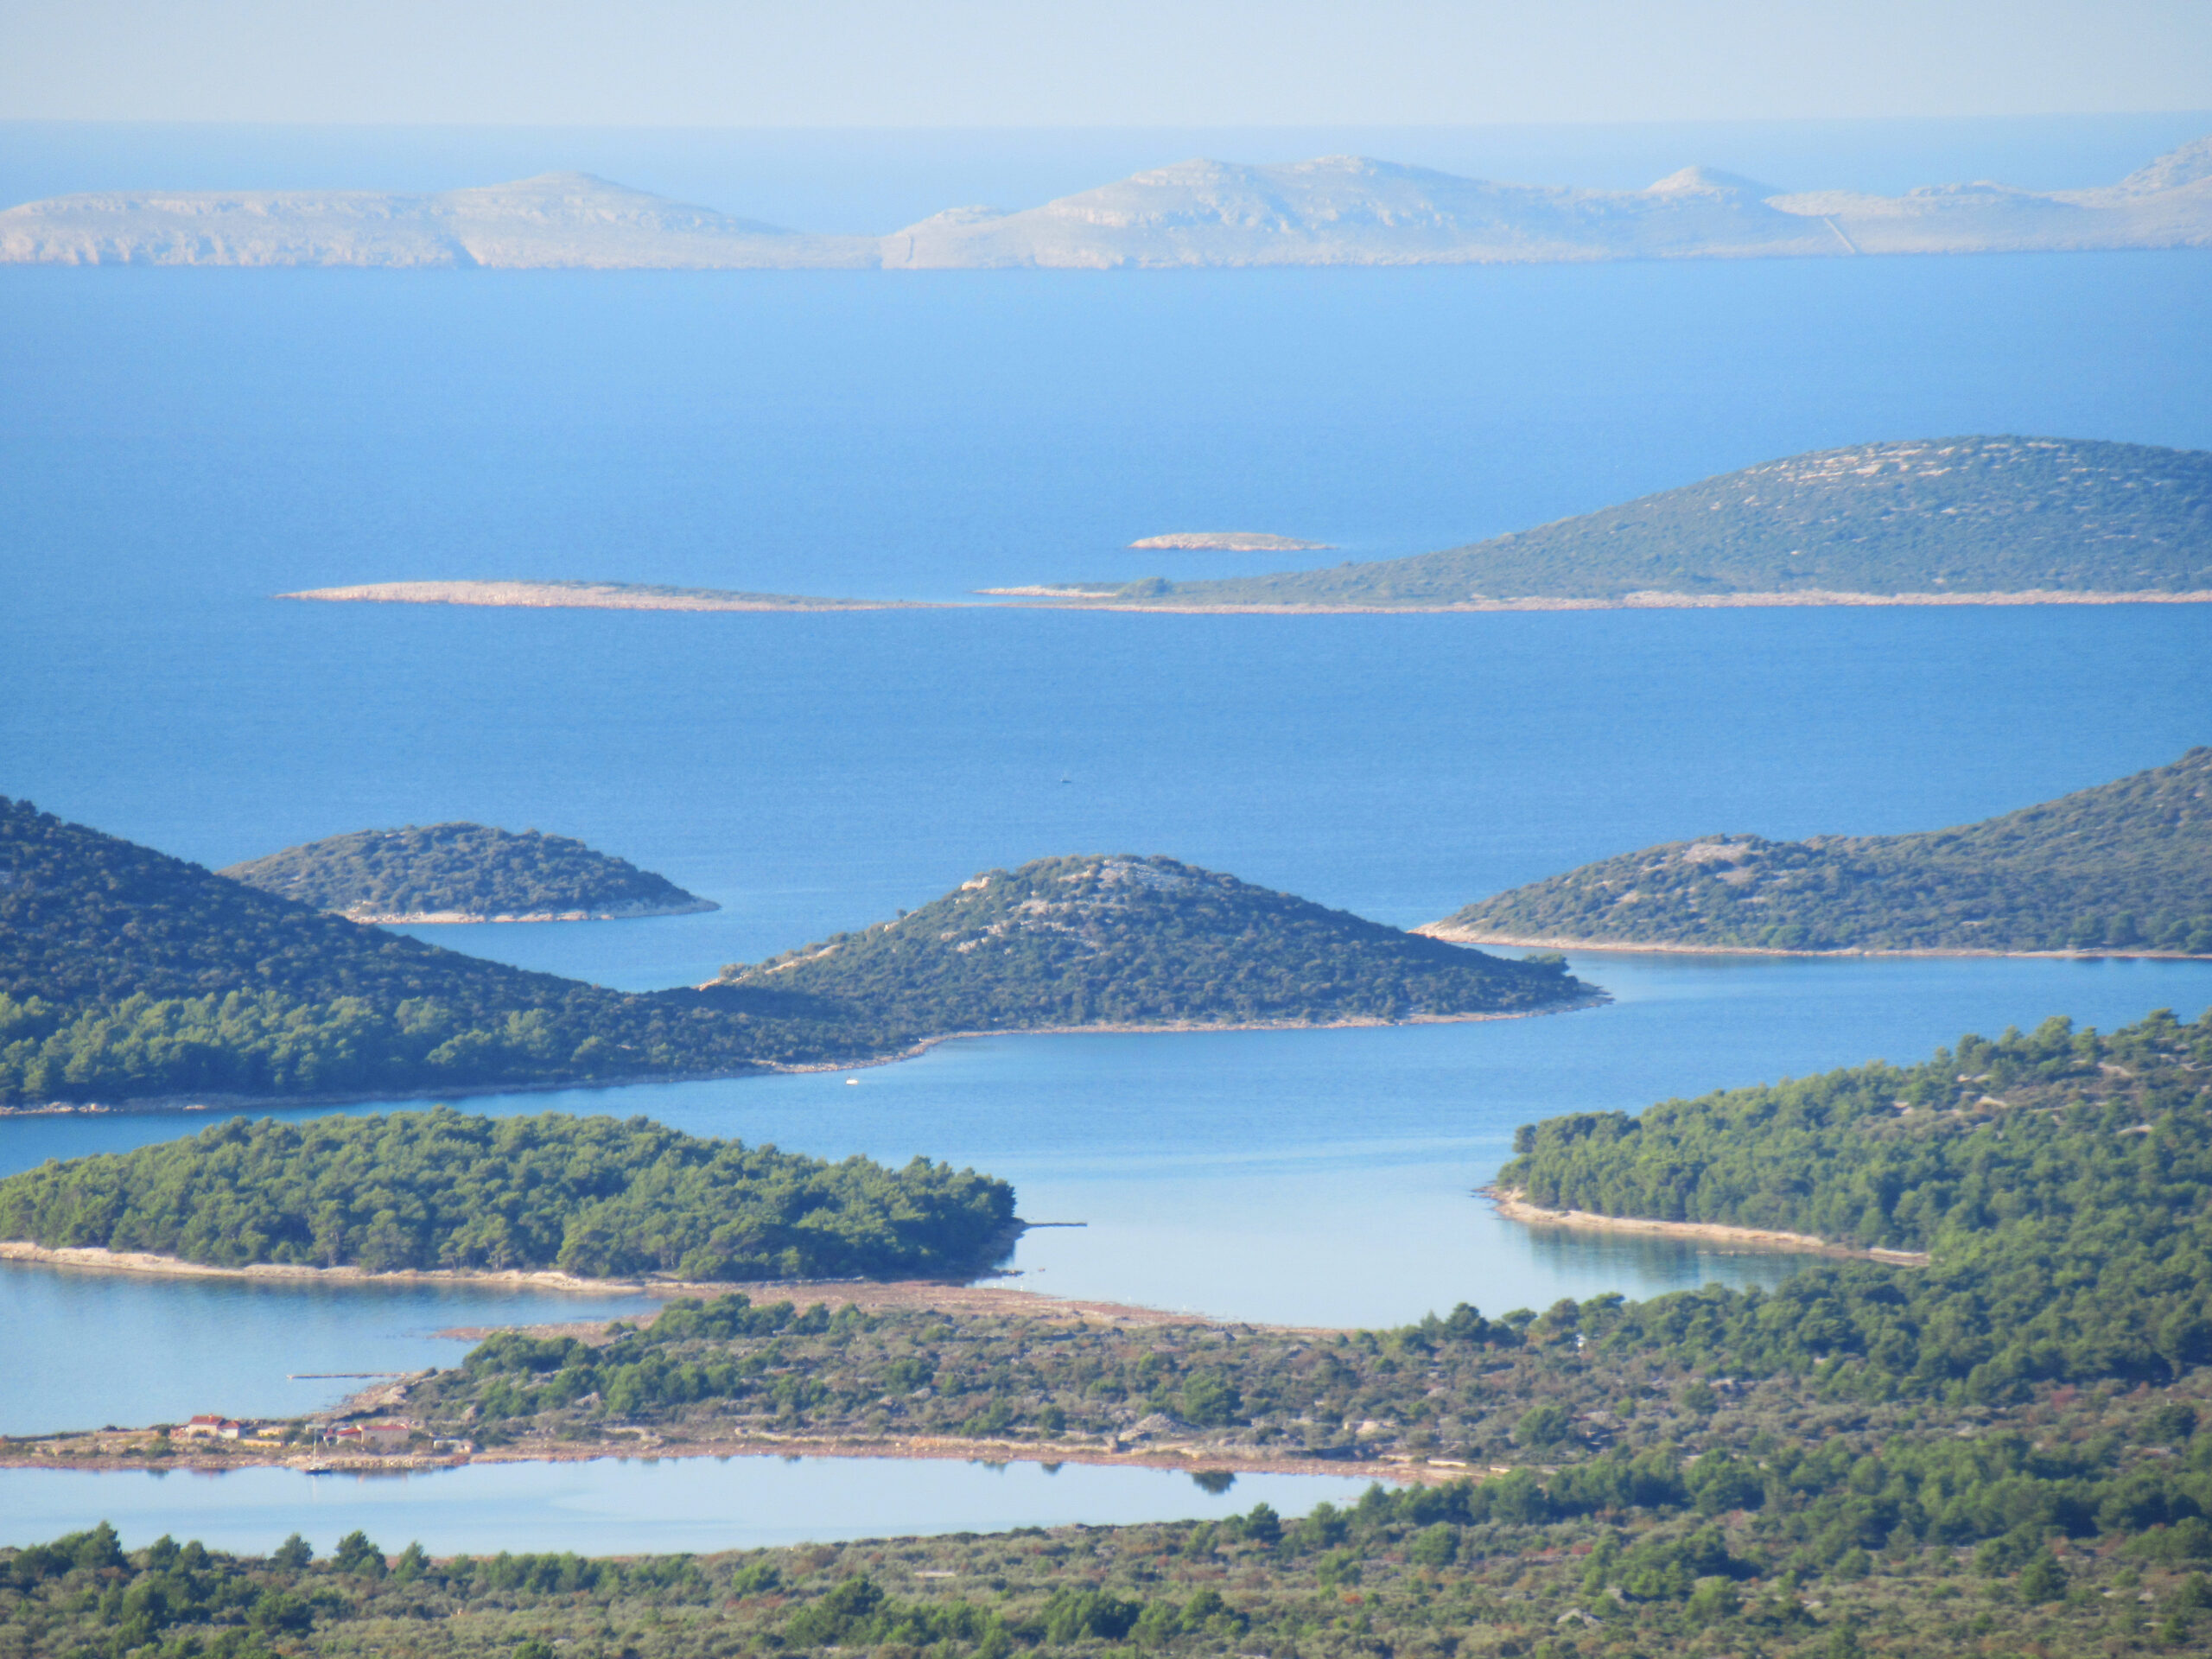 View over the Kornati Islands